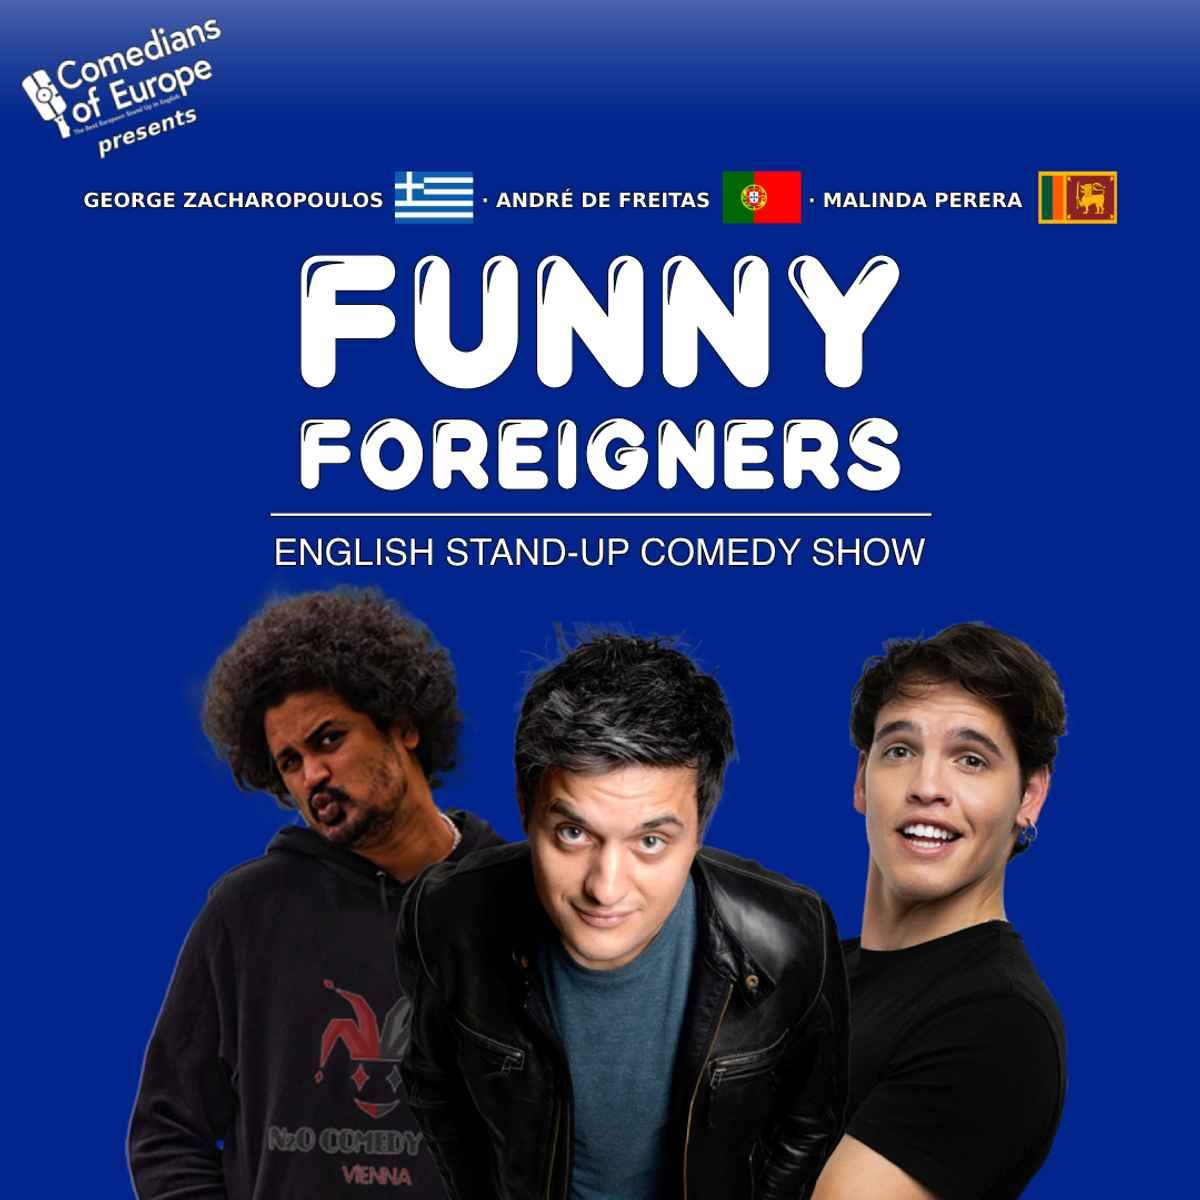 Funny Foreigners - English Stand Up Comedy Show event impressions #2